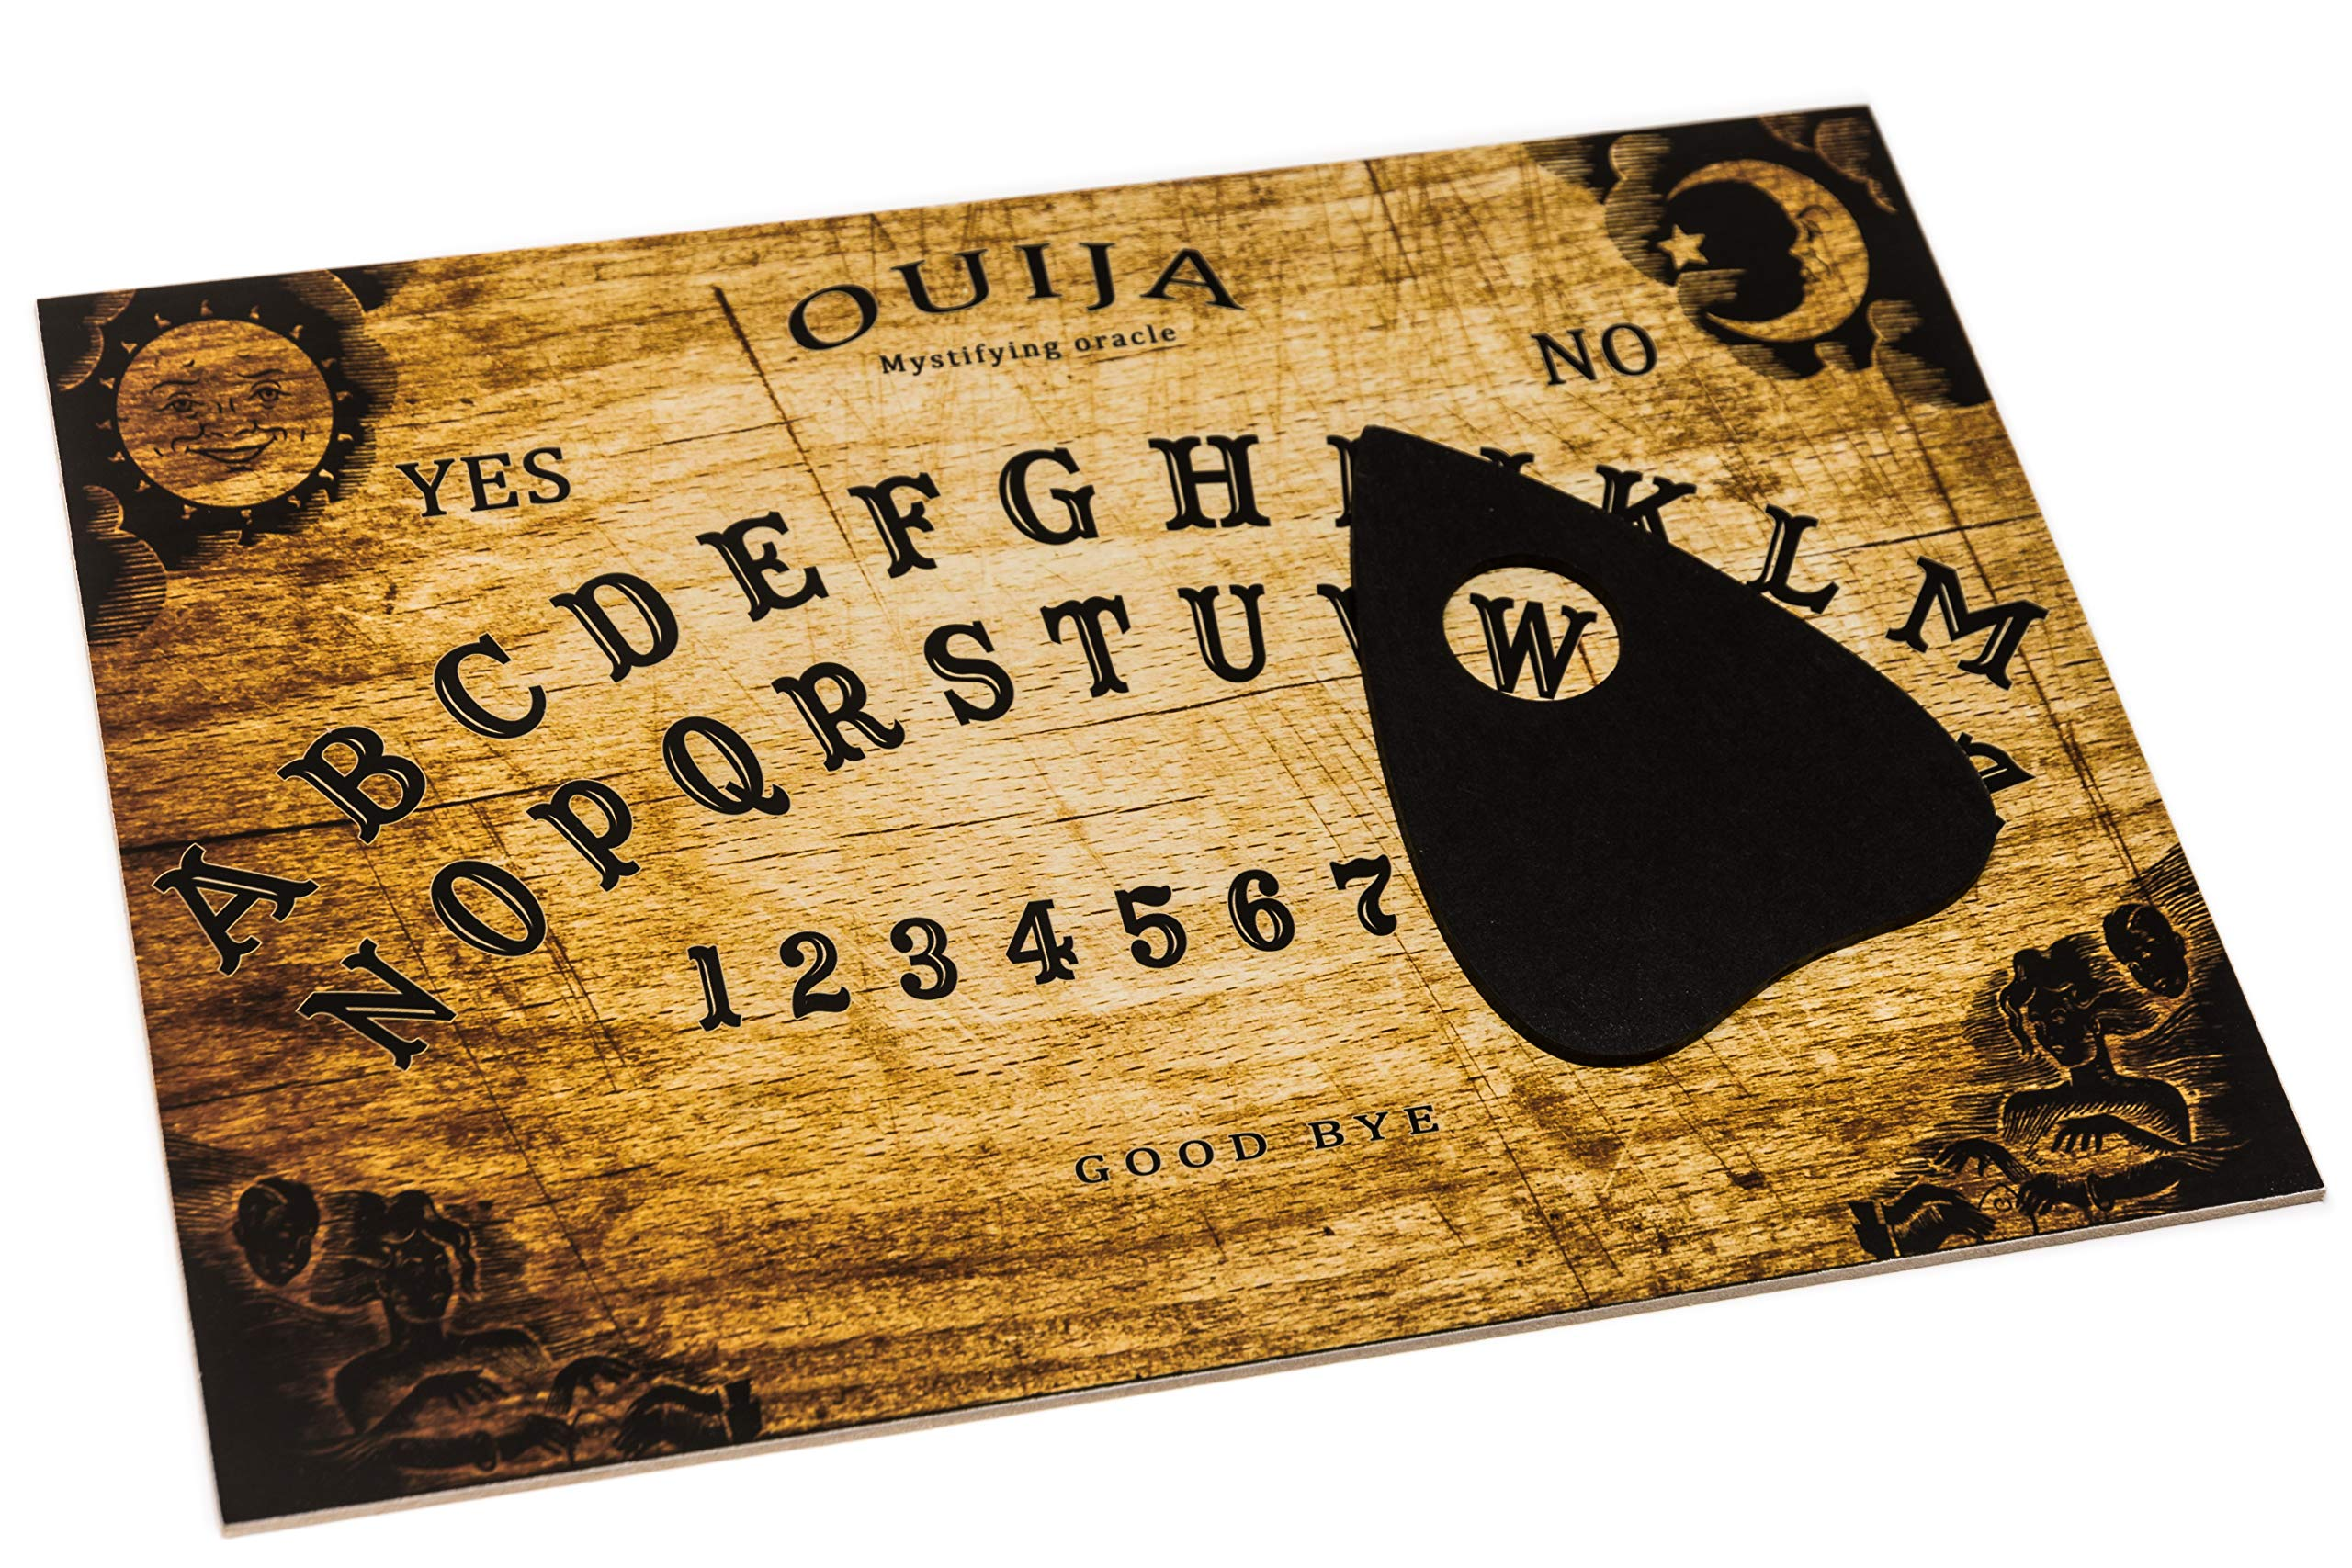 WICCSTAR Classic Ouija Spirit hunt Board game with Planchette and detailed instruction.